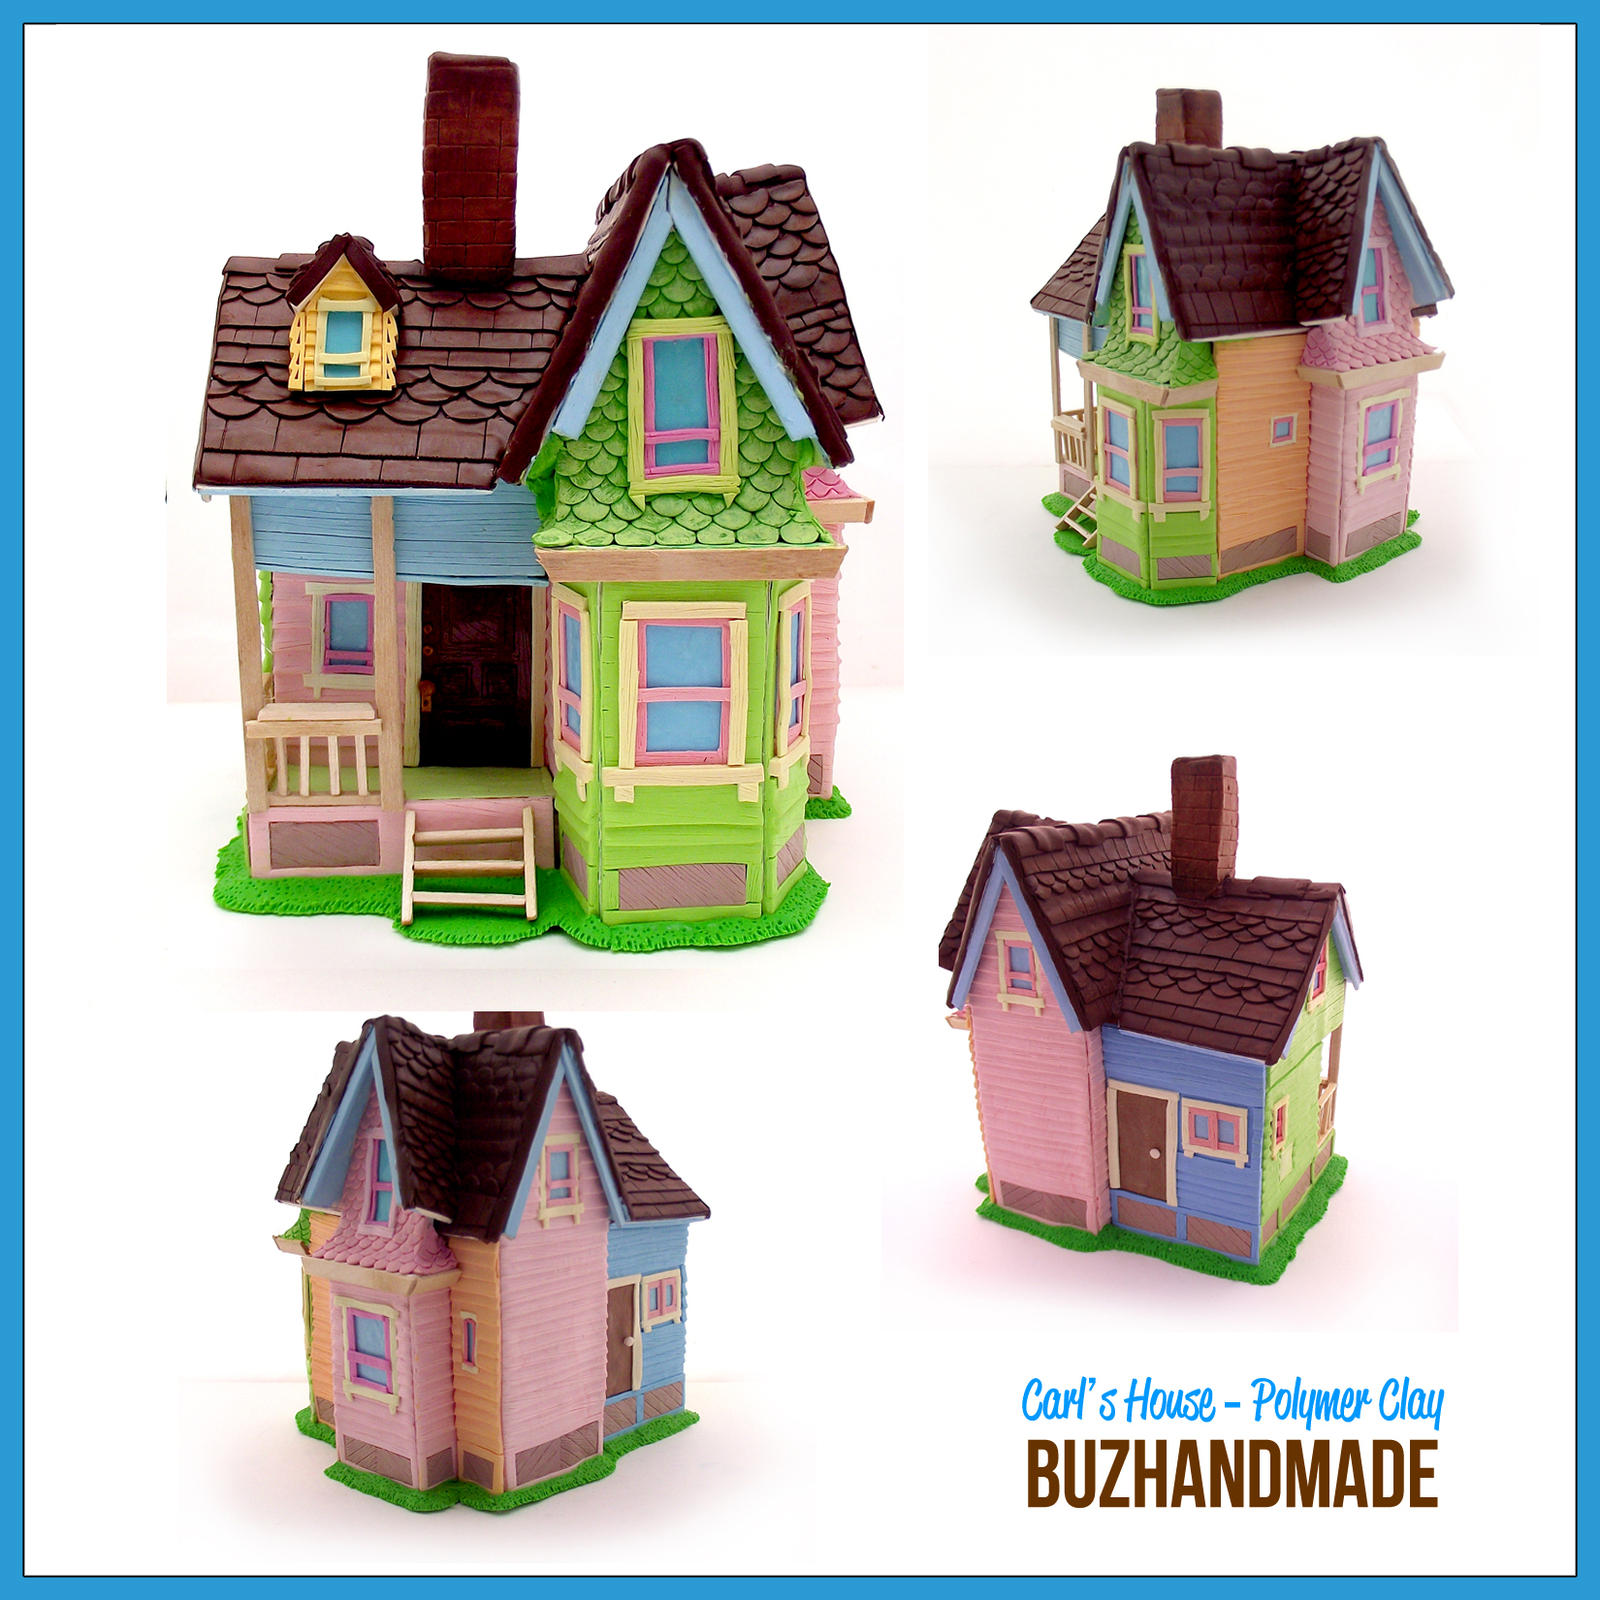 Carl's House - Polymer CLAY by buzhandmade